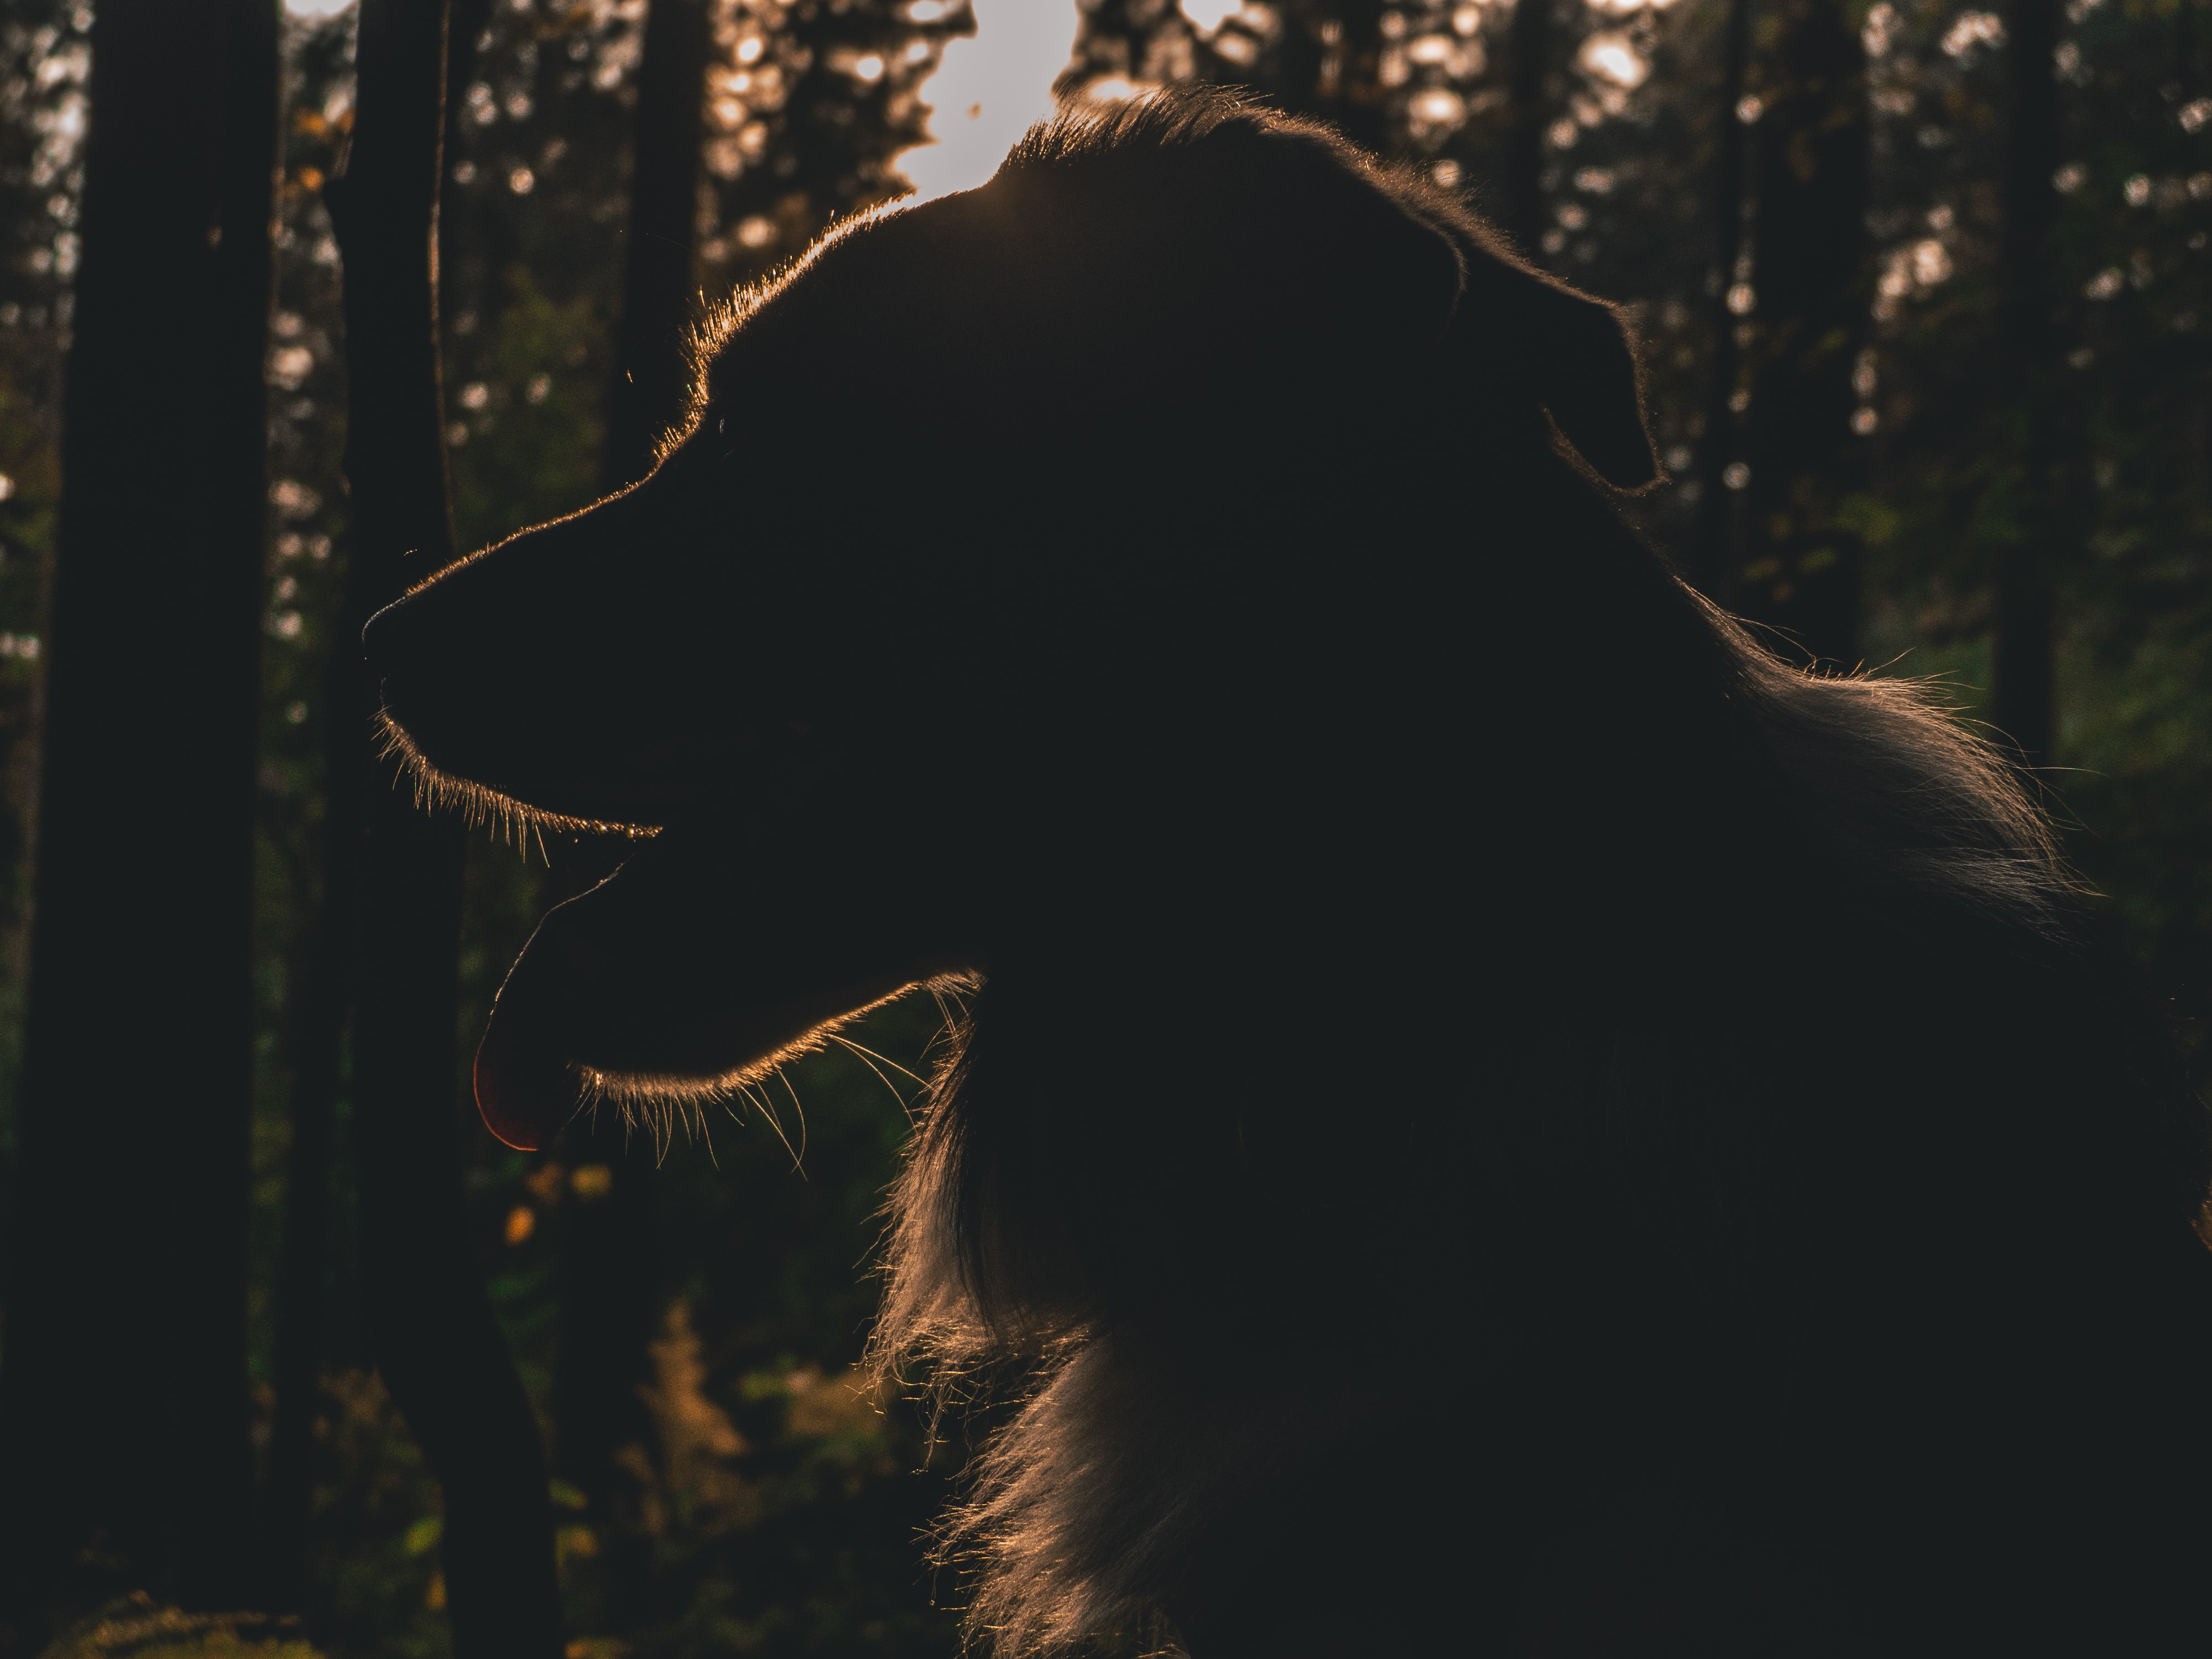 silhouette of dog on forest